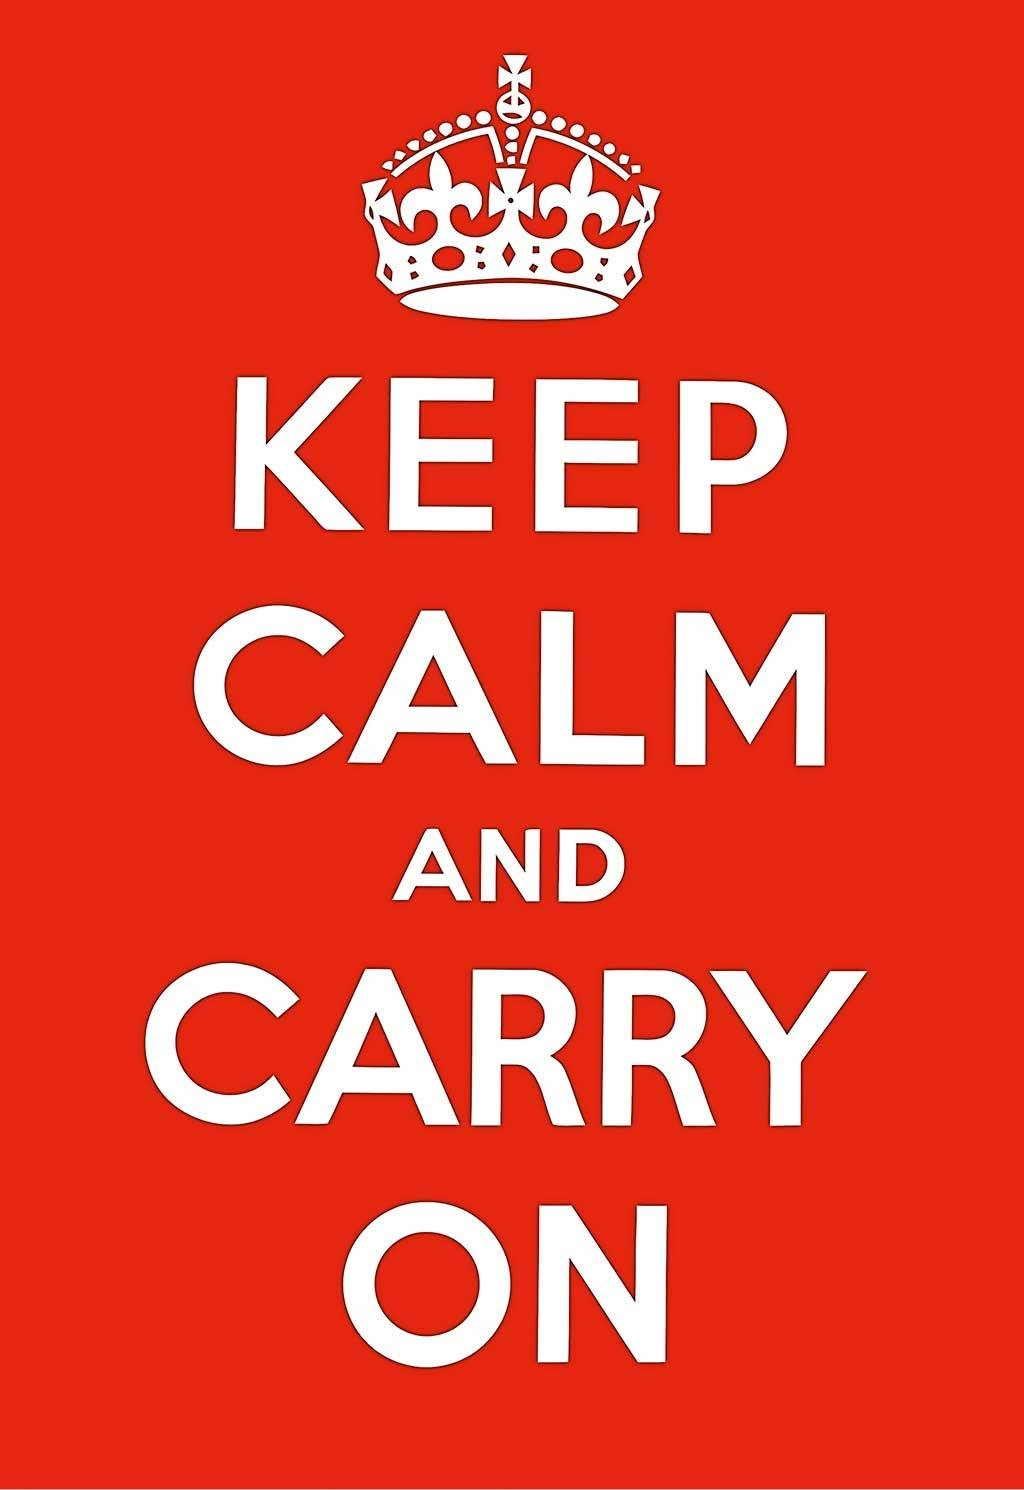 Keep Calm And Carry On Poster Prints Wall Decoration Art Pictures Pertaining To 2017 Keep Calm And Carry On Wall Art (View 12 of 25)